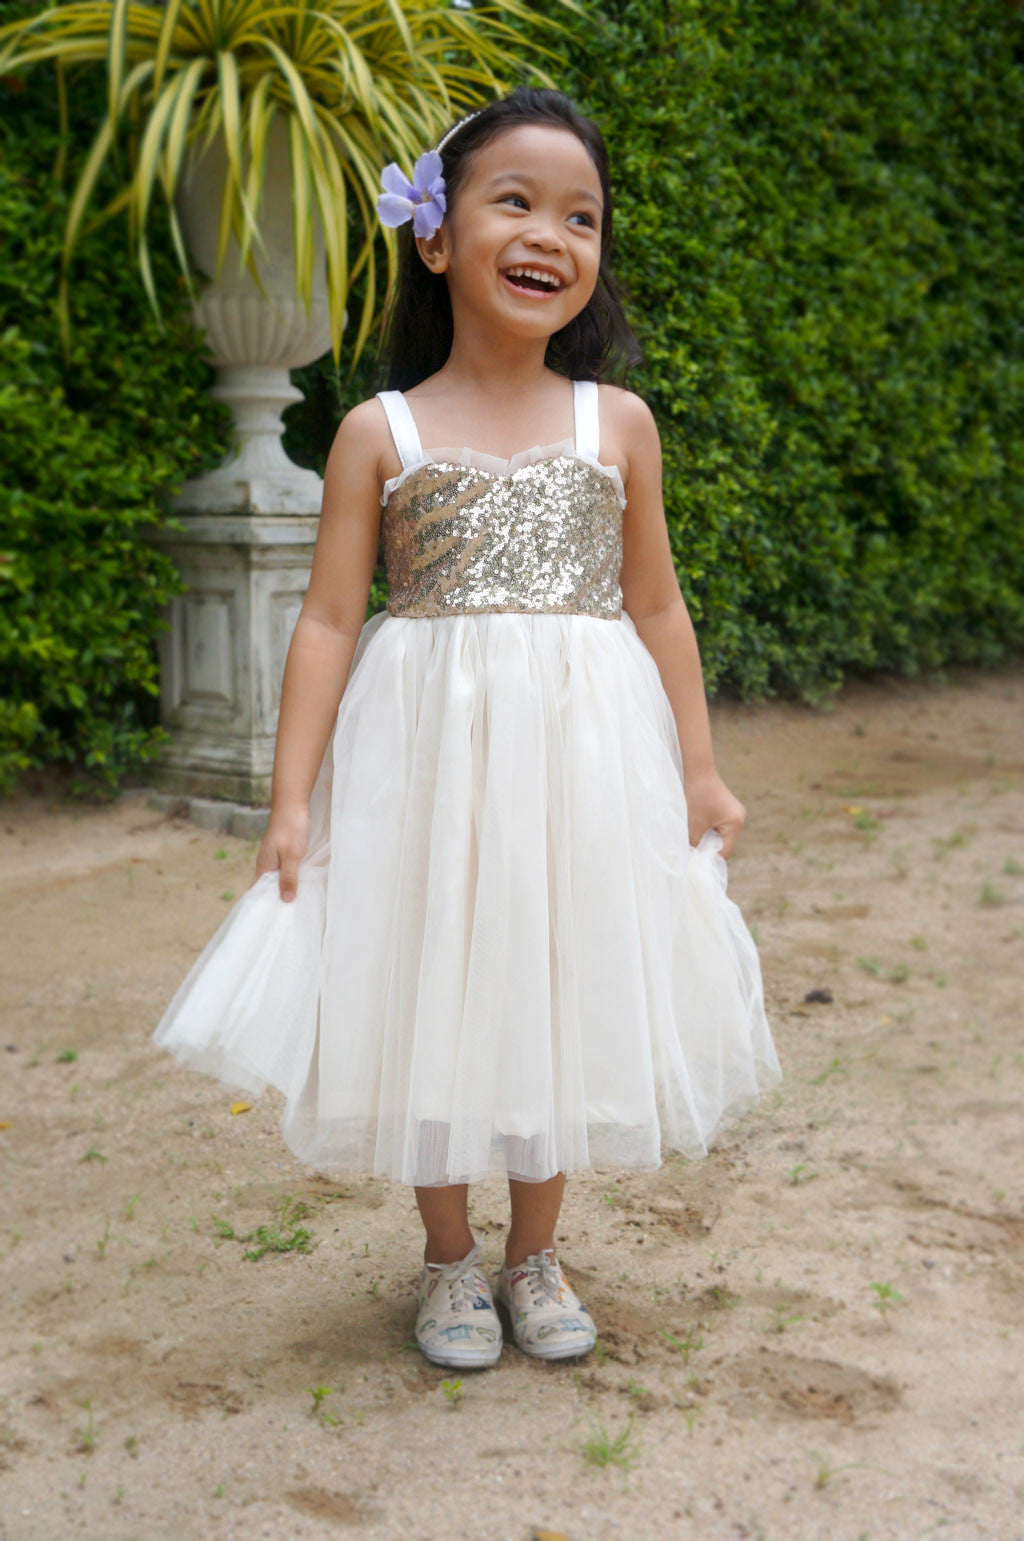 Flower girl dress rose gold and blush tulle dress junior flower girl dress rose gold and blush tulle dress junior bridesmaid dress blush flower girl dress ombrellifo Image collections